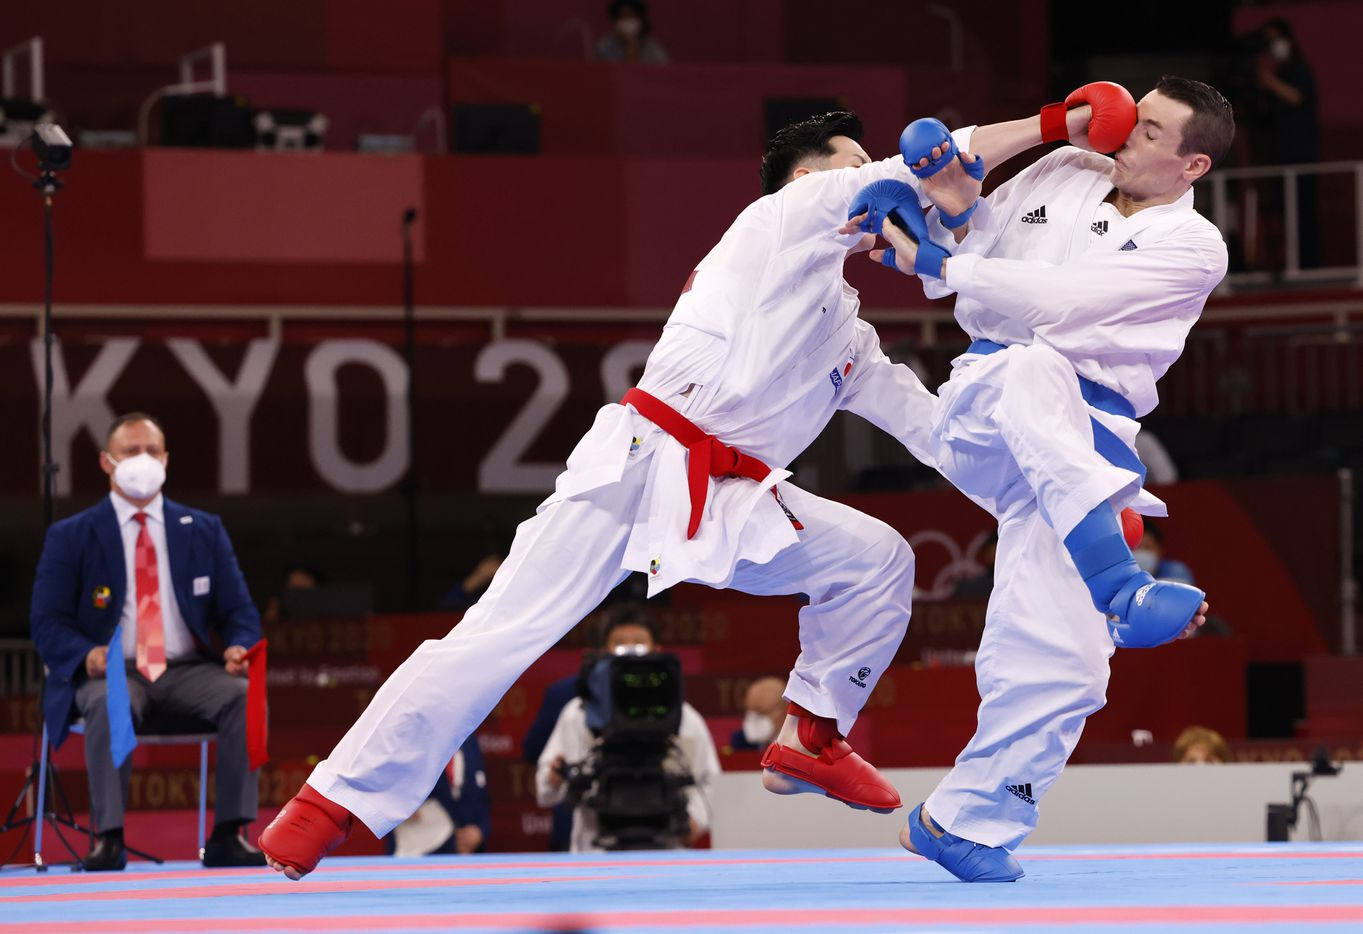 USA's Tom Scott is hit in the face by Japan's Ken Nishimura during the karate men's kumite -75kg elimination round at the postponed 2020 Tokyo Olympics at Nippon Budokan, on Friday, August 6, 2021, in Tokyo, Japan. Nishimura defeated Scott 2-0. Scott finished in fourth place in his pool and did not advance to the next round. (Vernon Bryant/The Dallas Morning News)